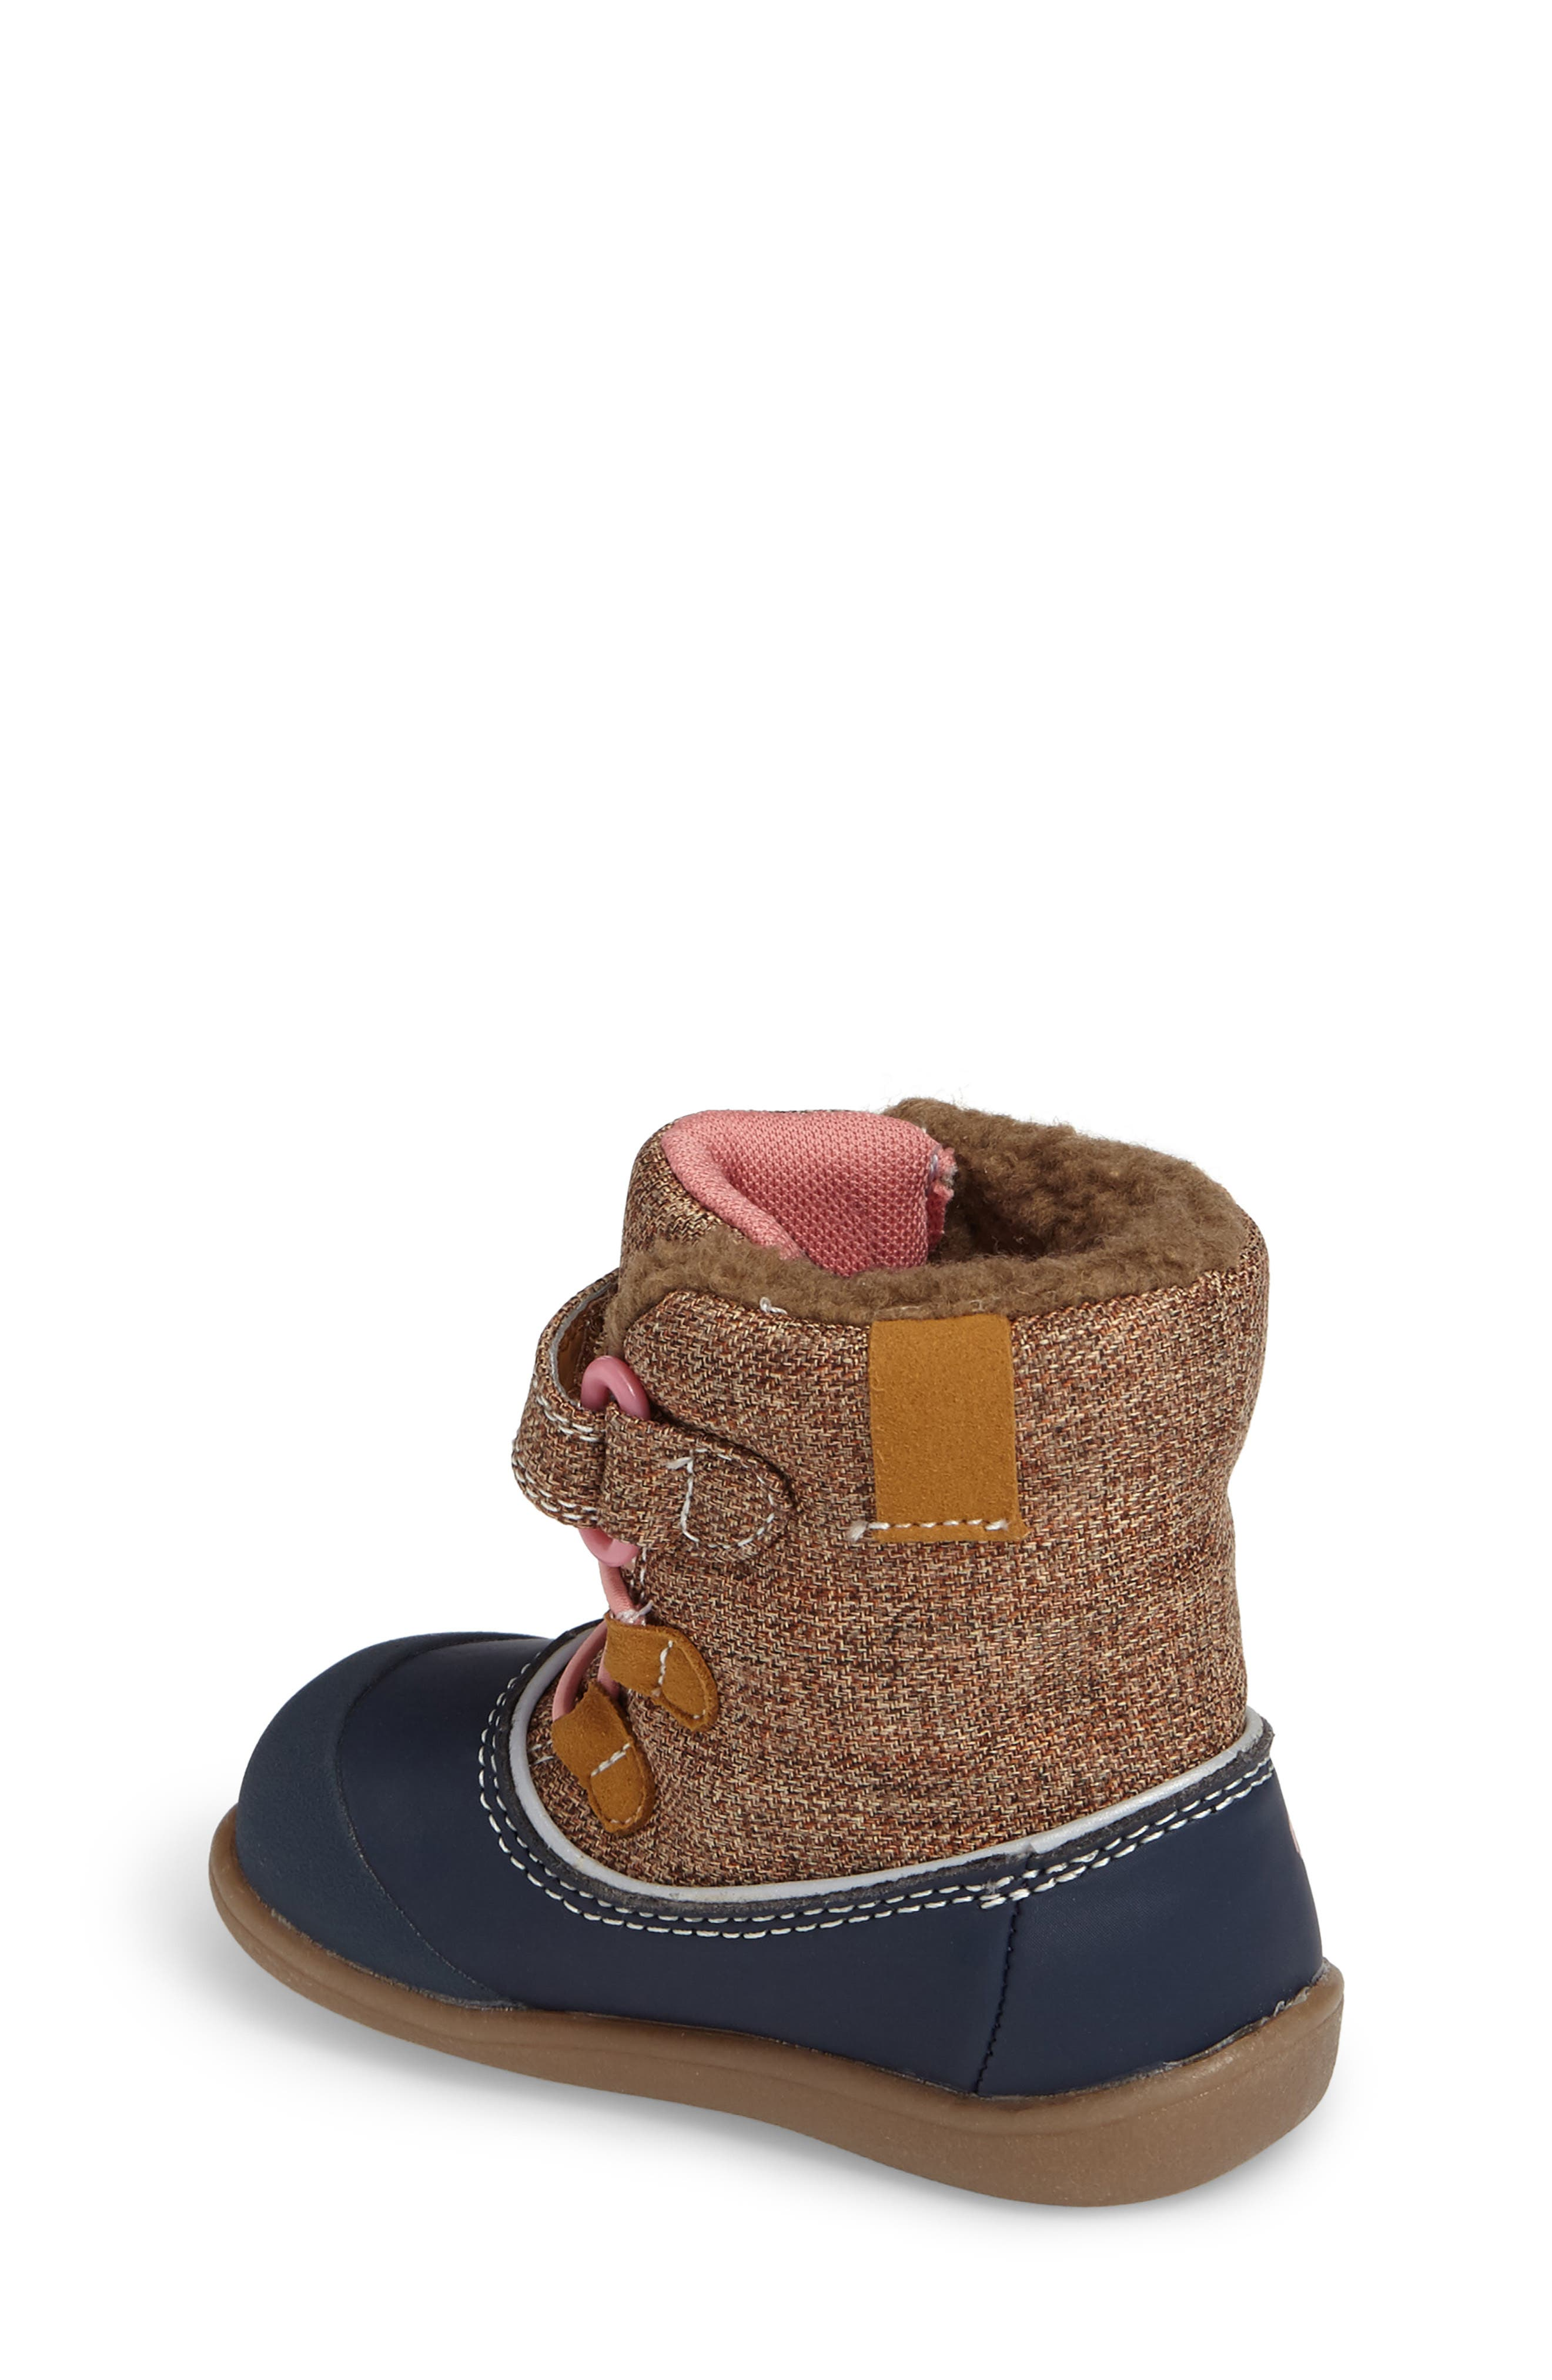 'Abby' Waterproof Boot,                             Alternate thumbnail 2, color,                             Brown